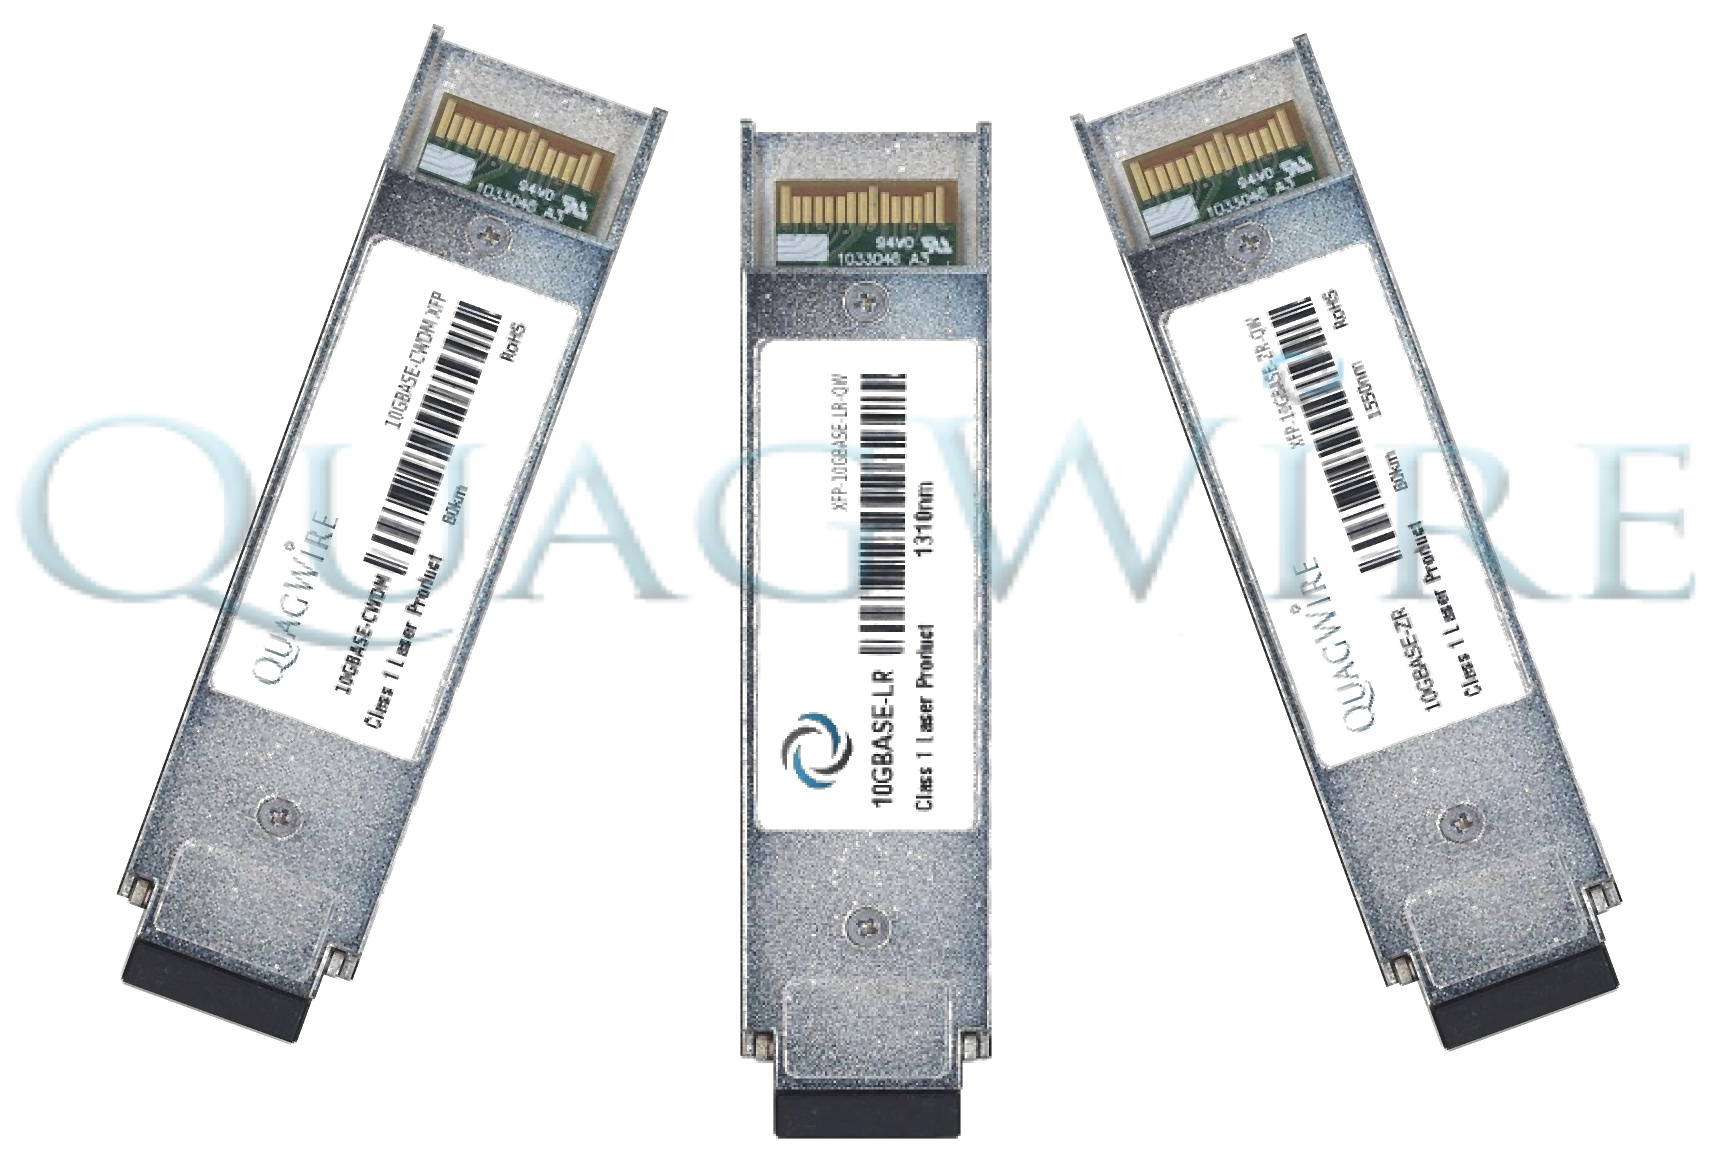 EX-XFP-10GE-LR Juniper 10GBASE-LR 10km 1310nm Singlemode 10-Gigabit Ethernet Optical XFP Transceiver Module